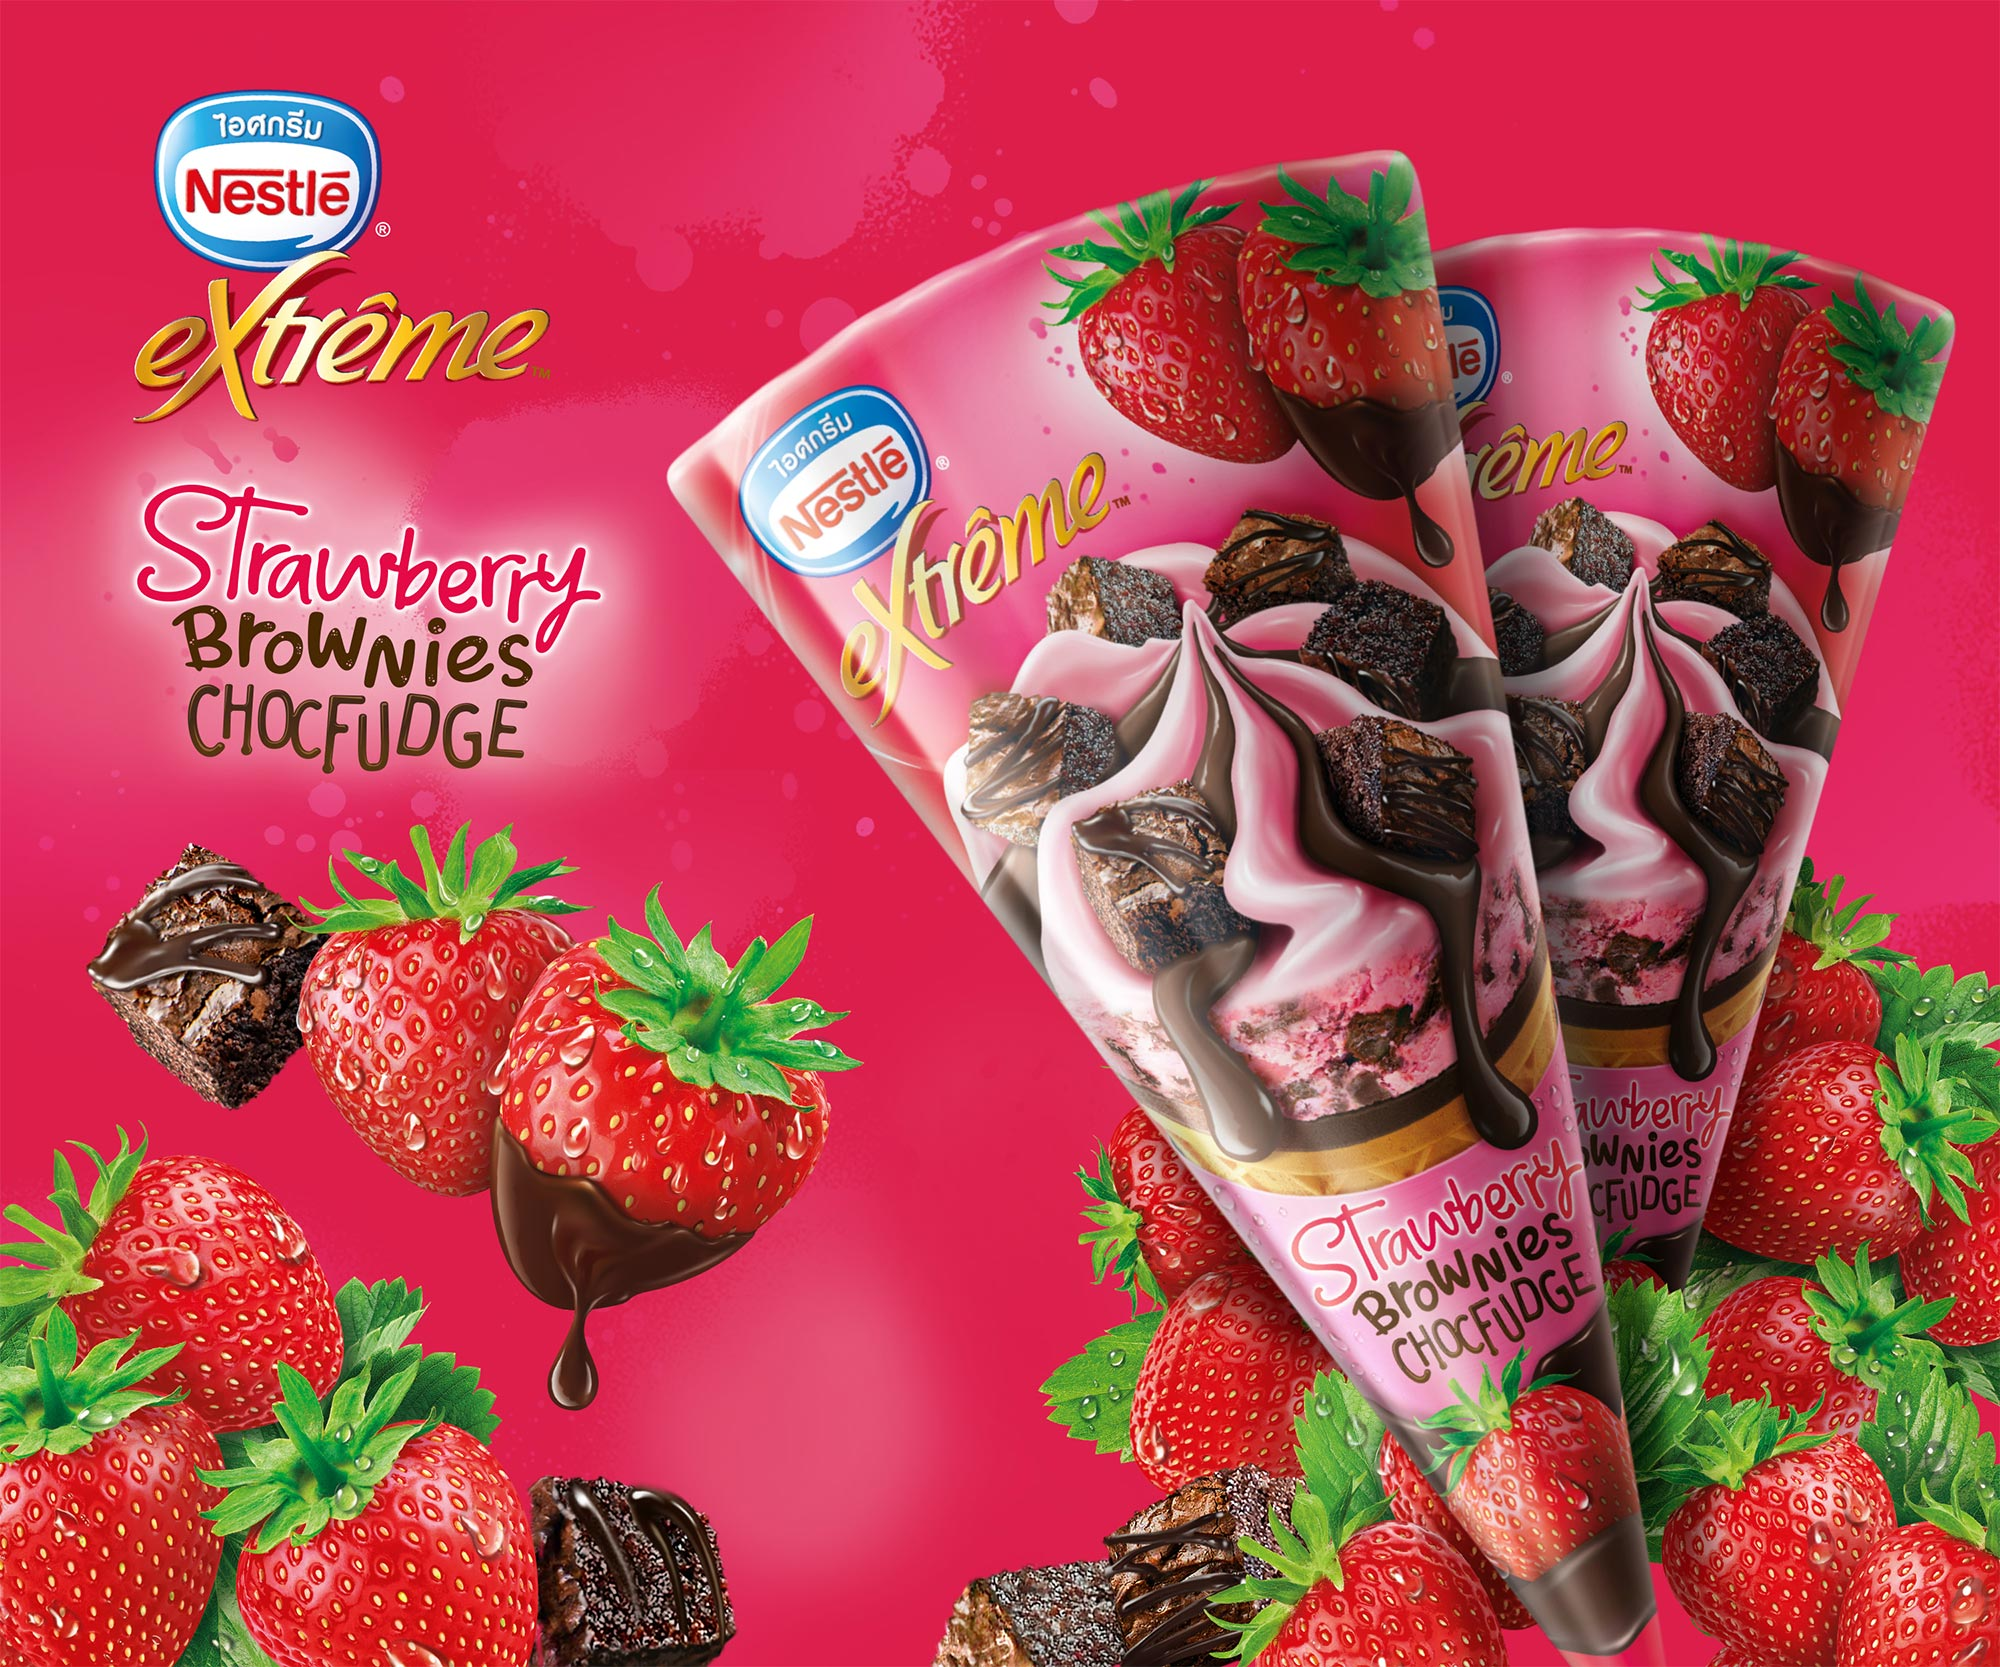 Nestle Ice Cream Strawberry Chocfudge Cone Branding